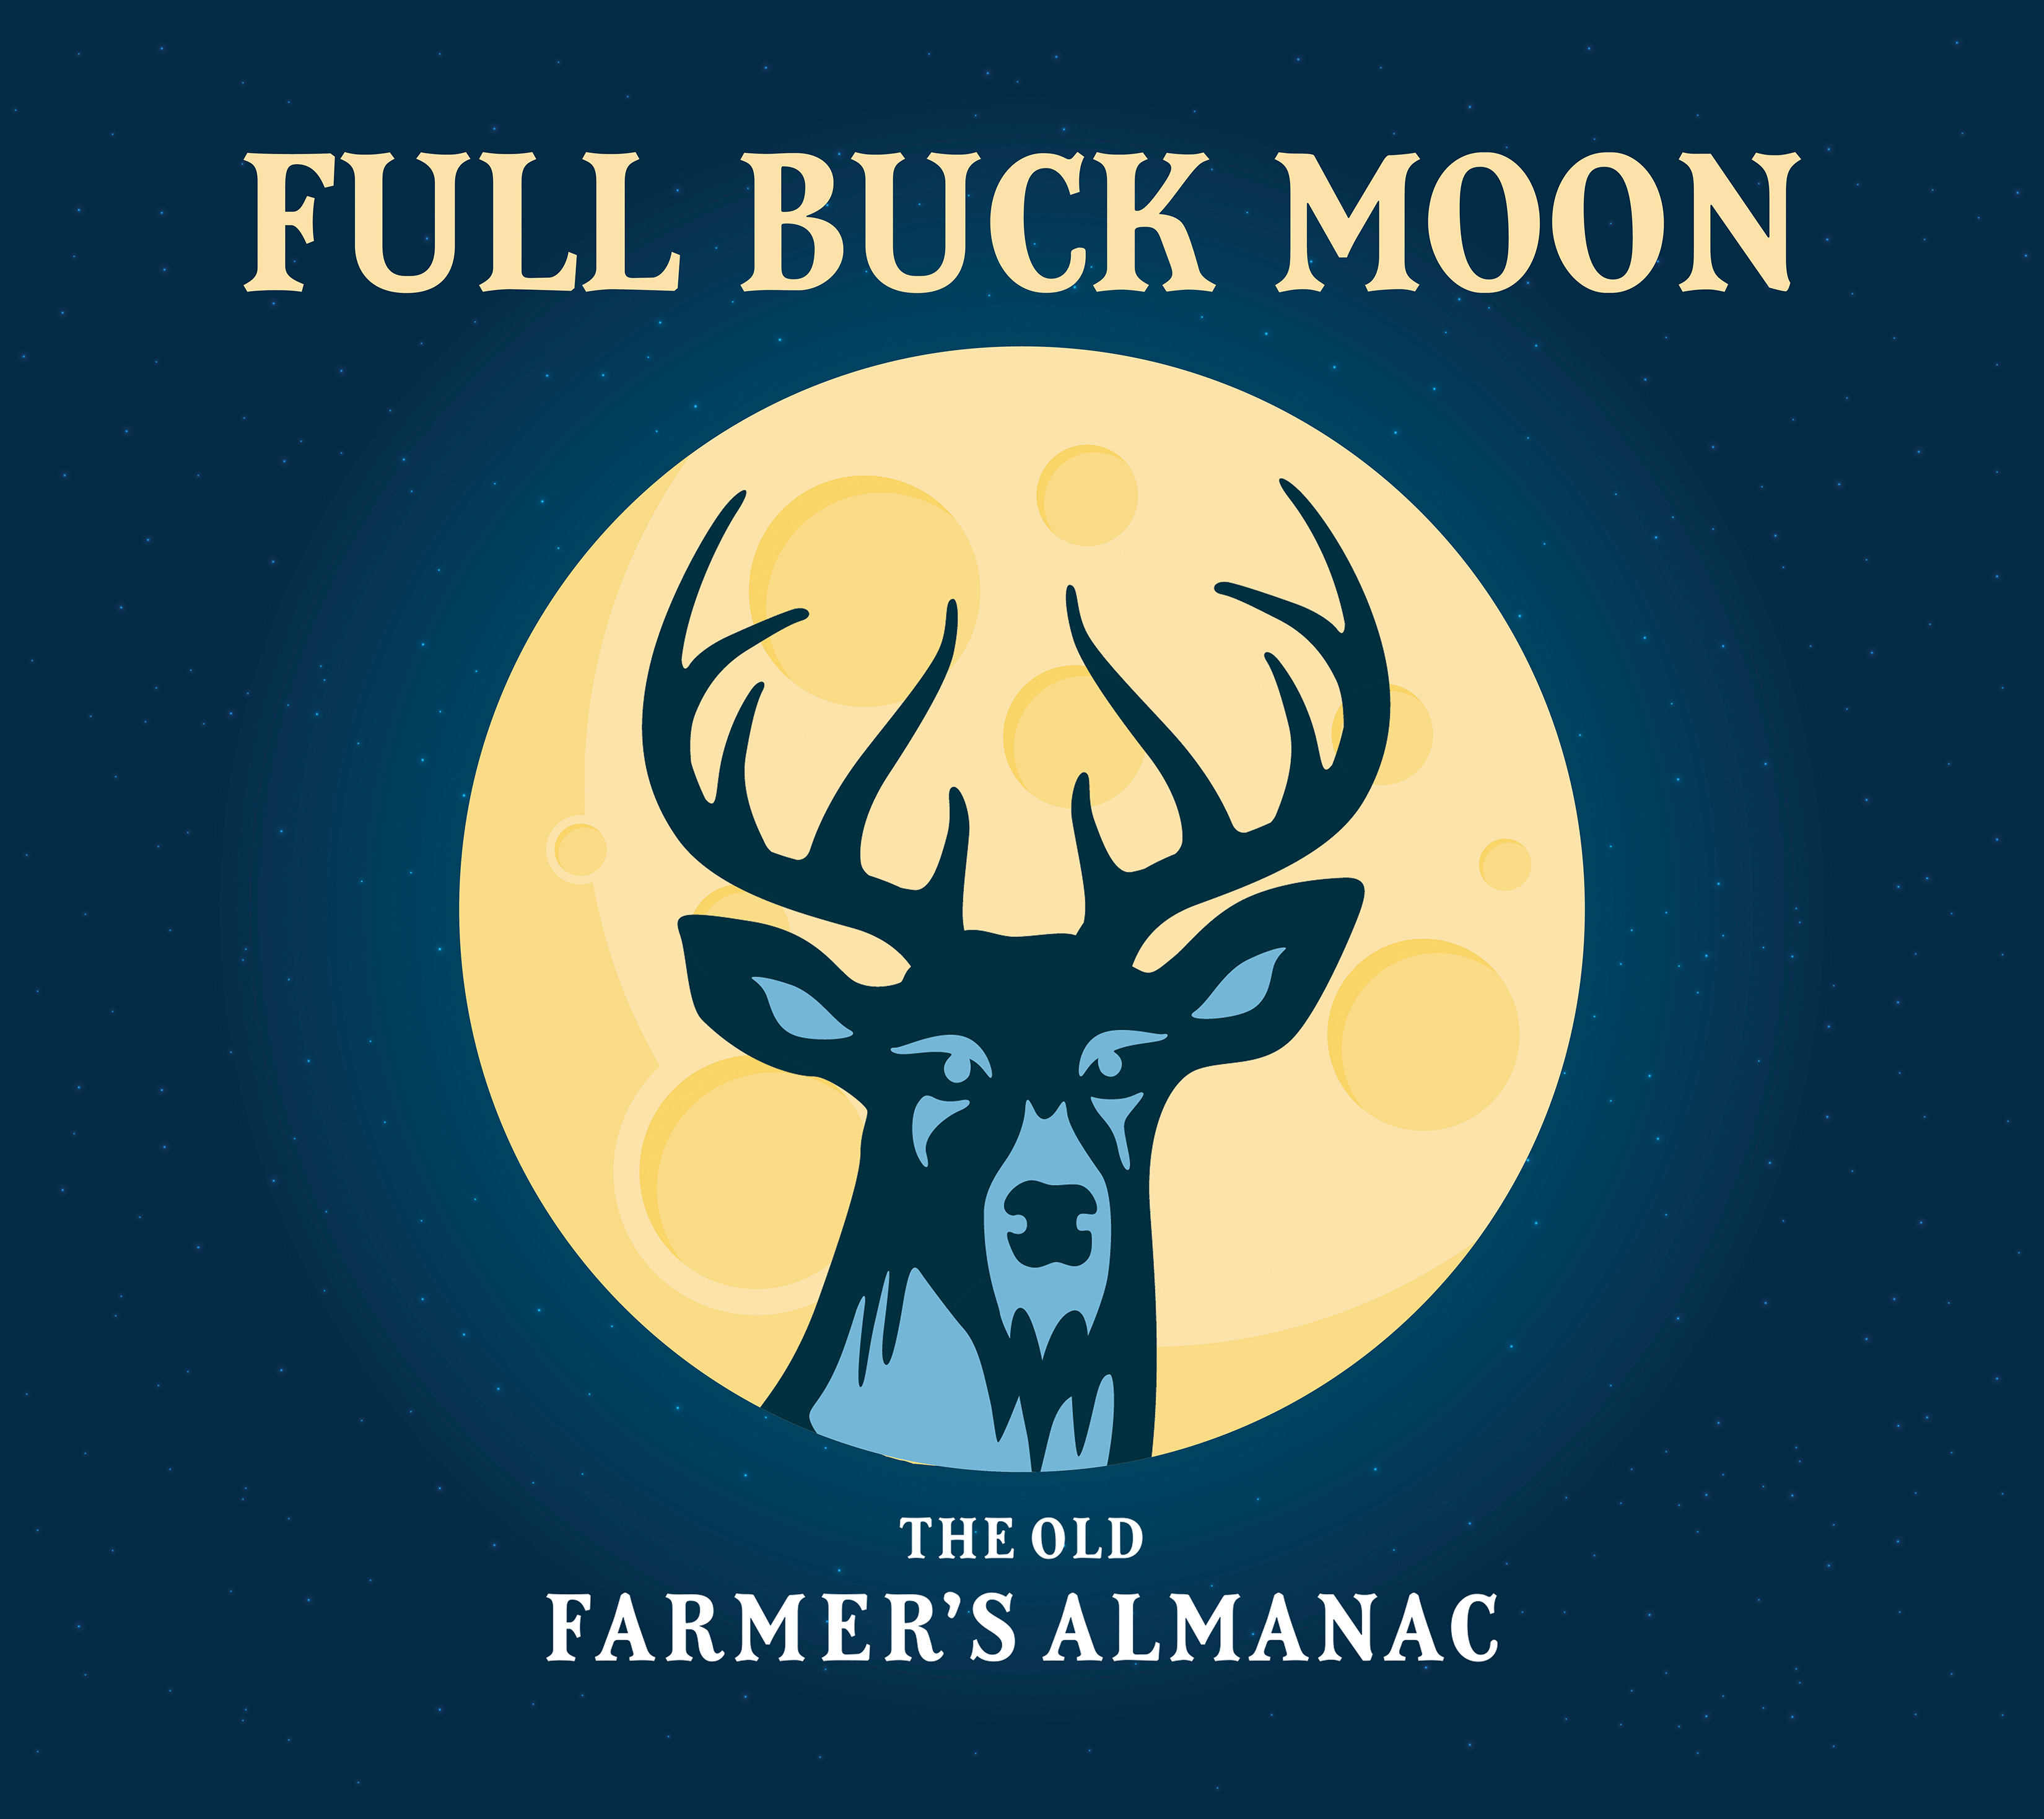 Full moon for july 2018 the full buck moon the old farmers almanac nvjuhfo Image collections